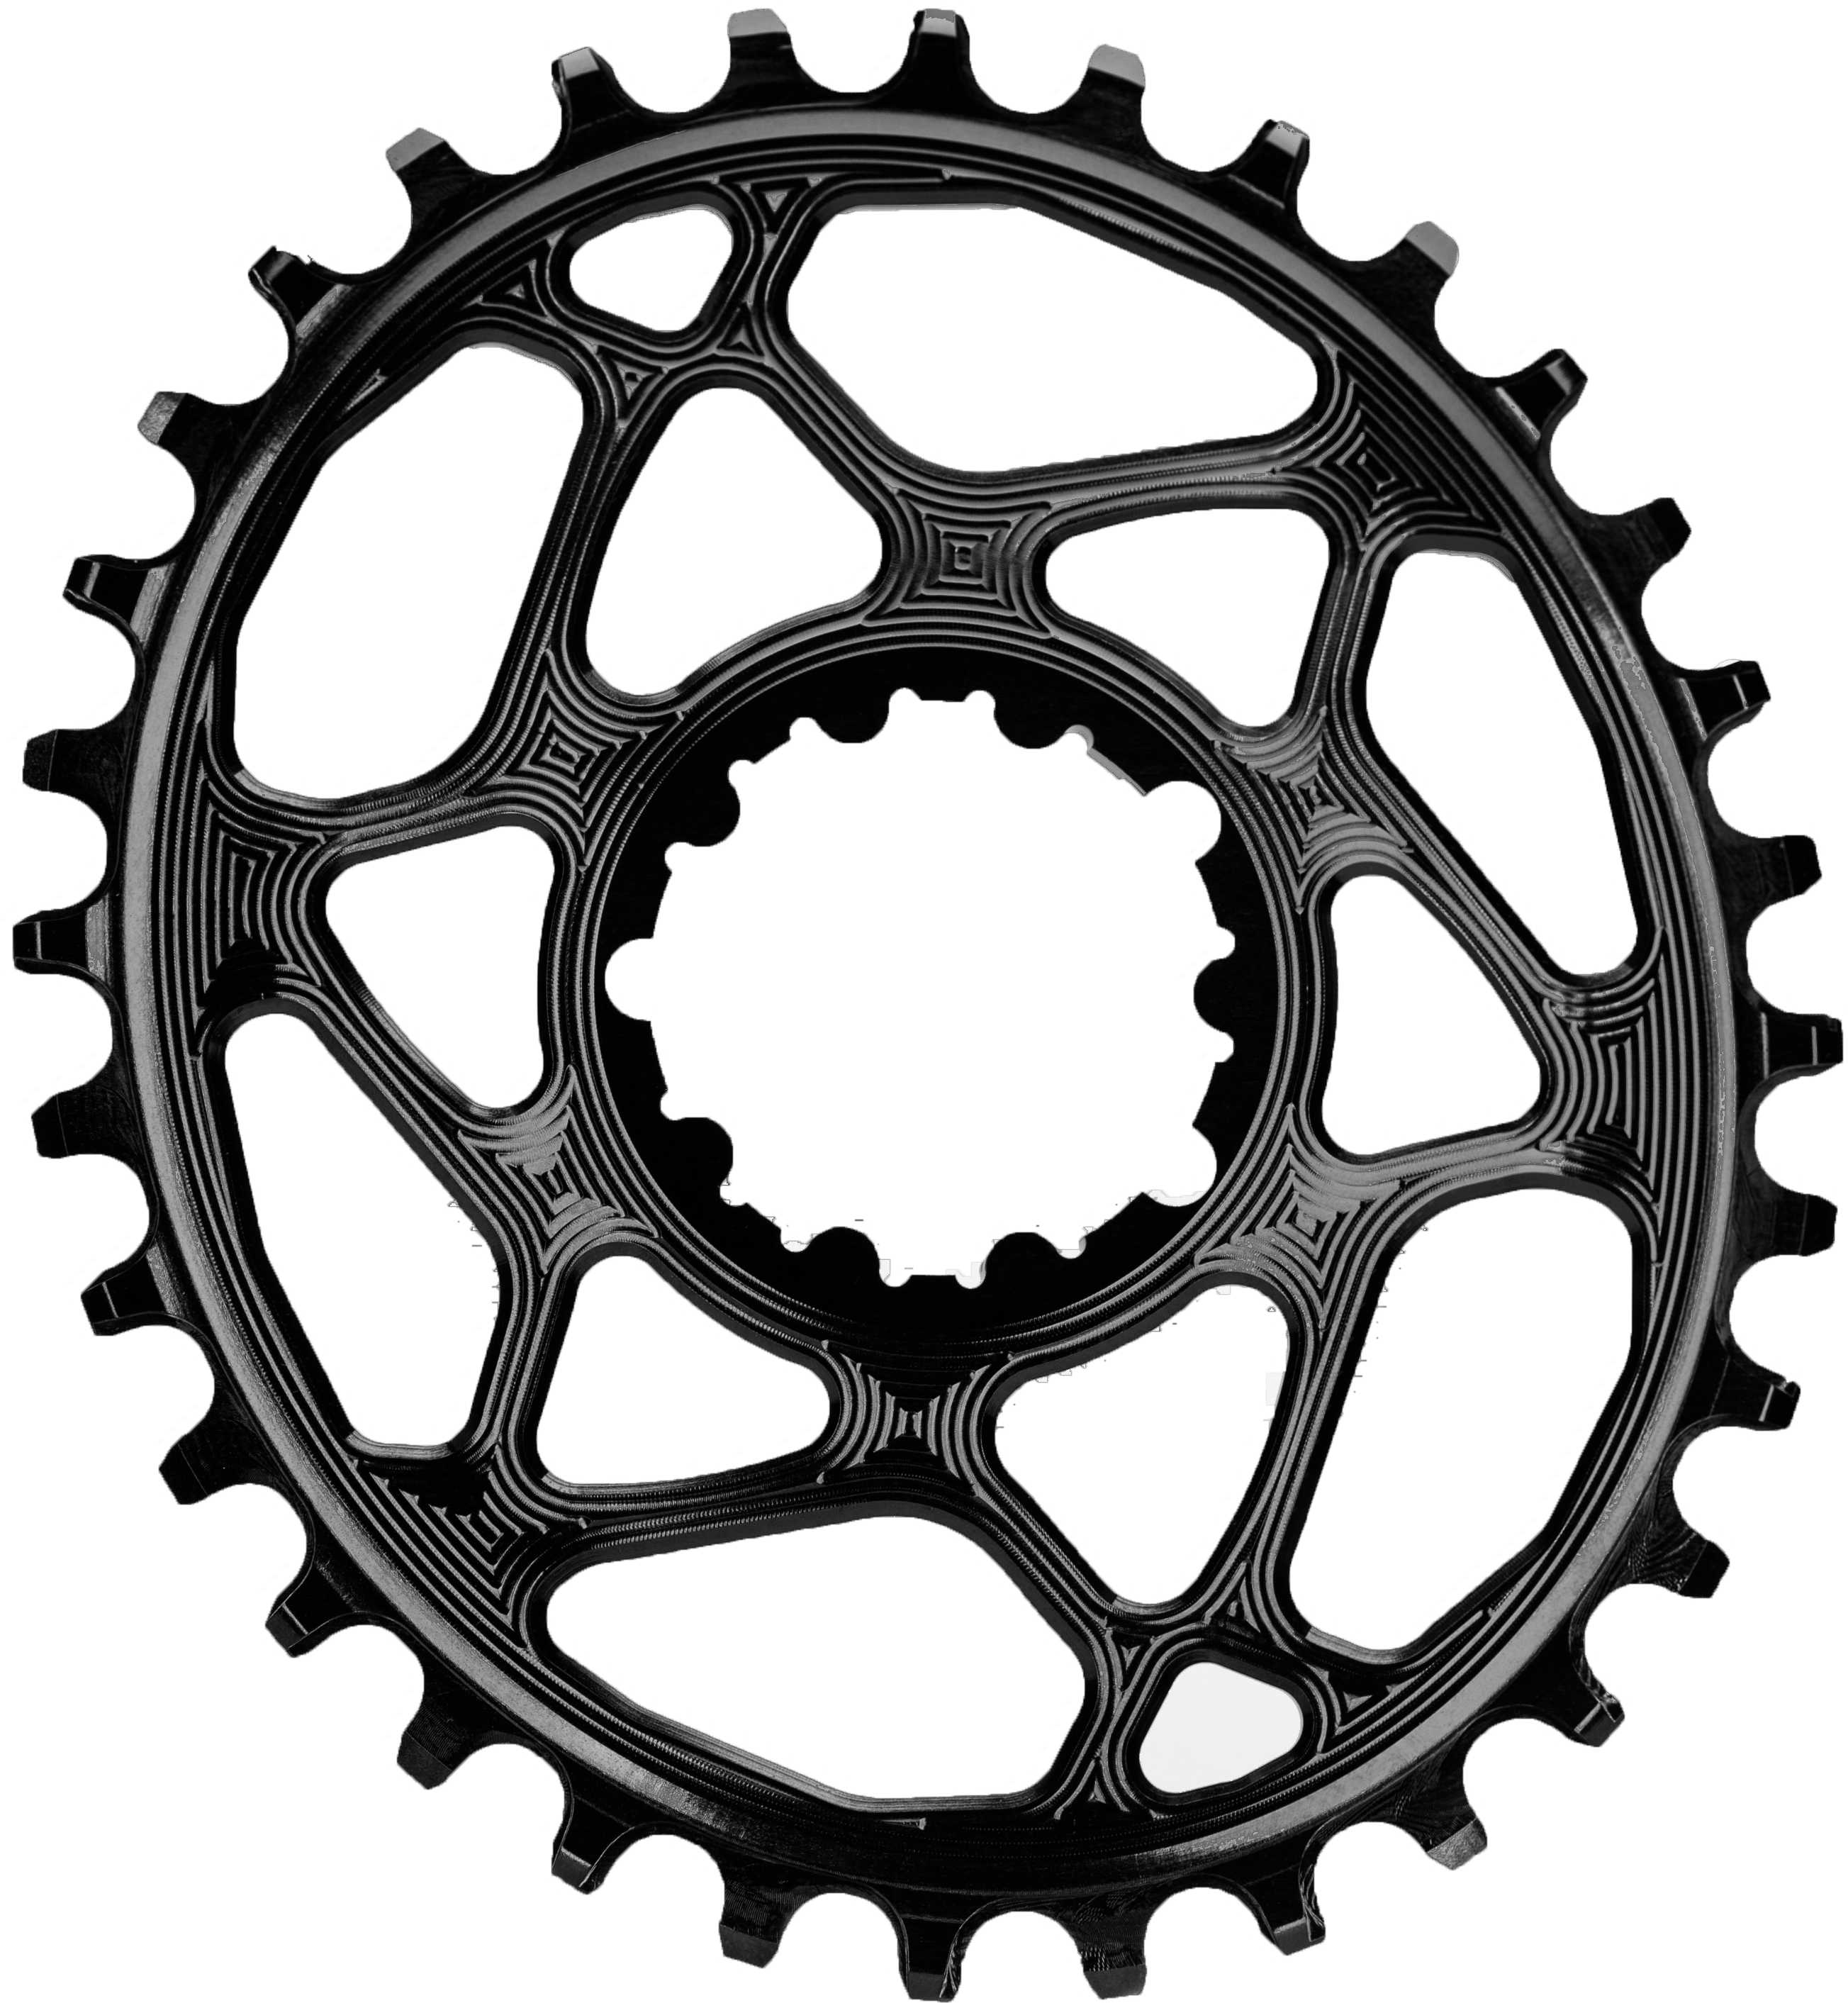 FRONT KLINGE ABSOLUTEBLACK OVAL NARROW-WIDE BOOST 148 SRAM DIRECT MOUNT 32T SORT | chainrings_component